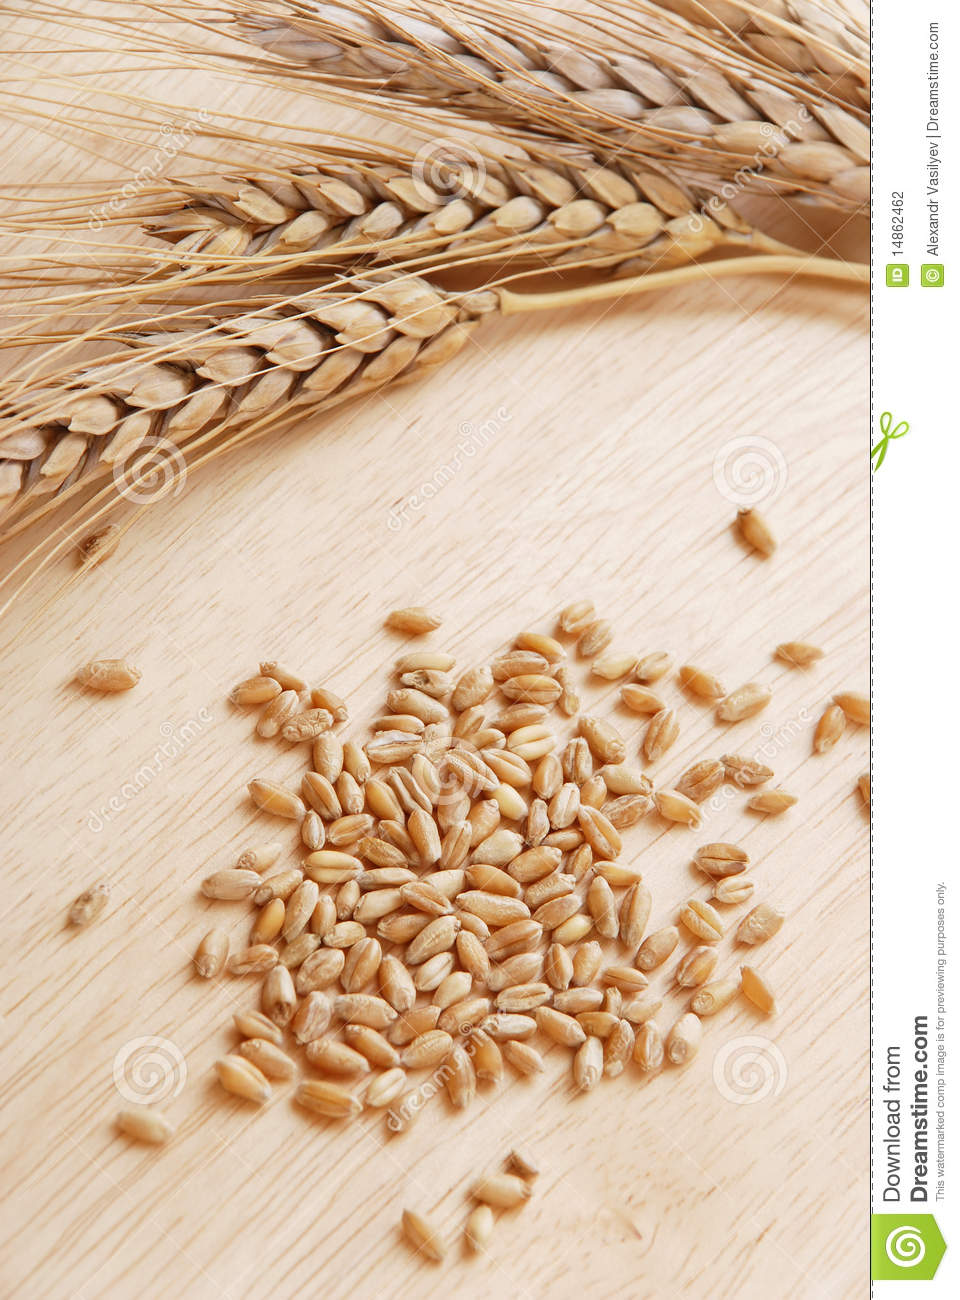 Ear and grain of the wheat